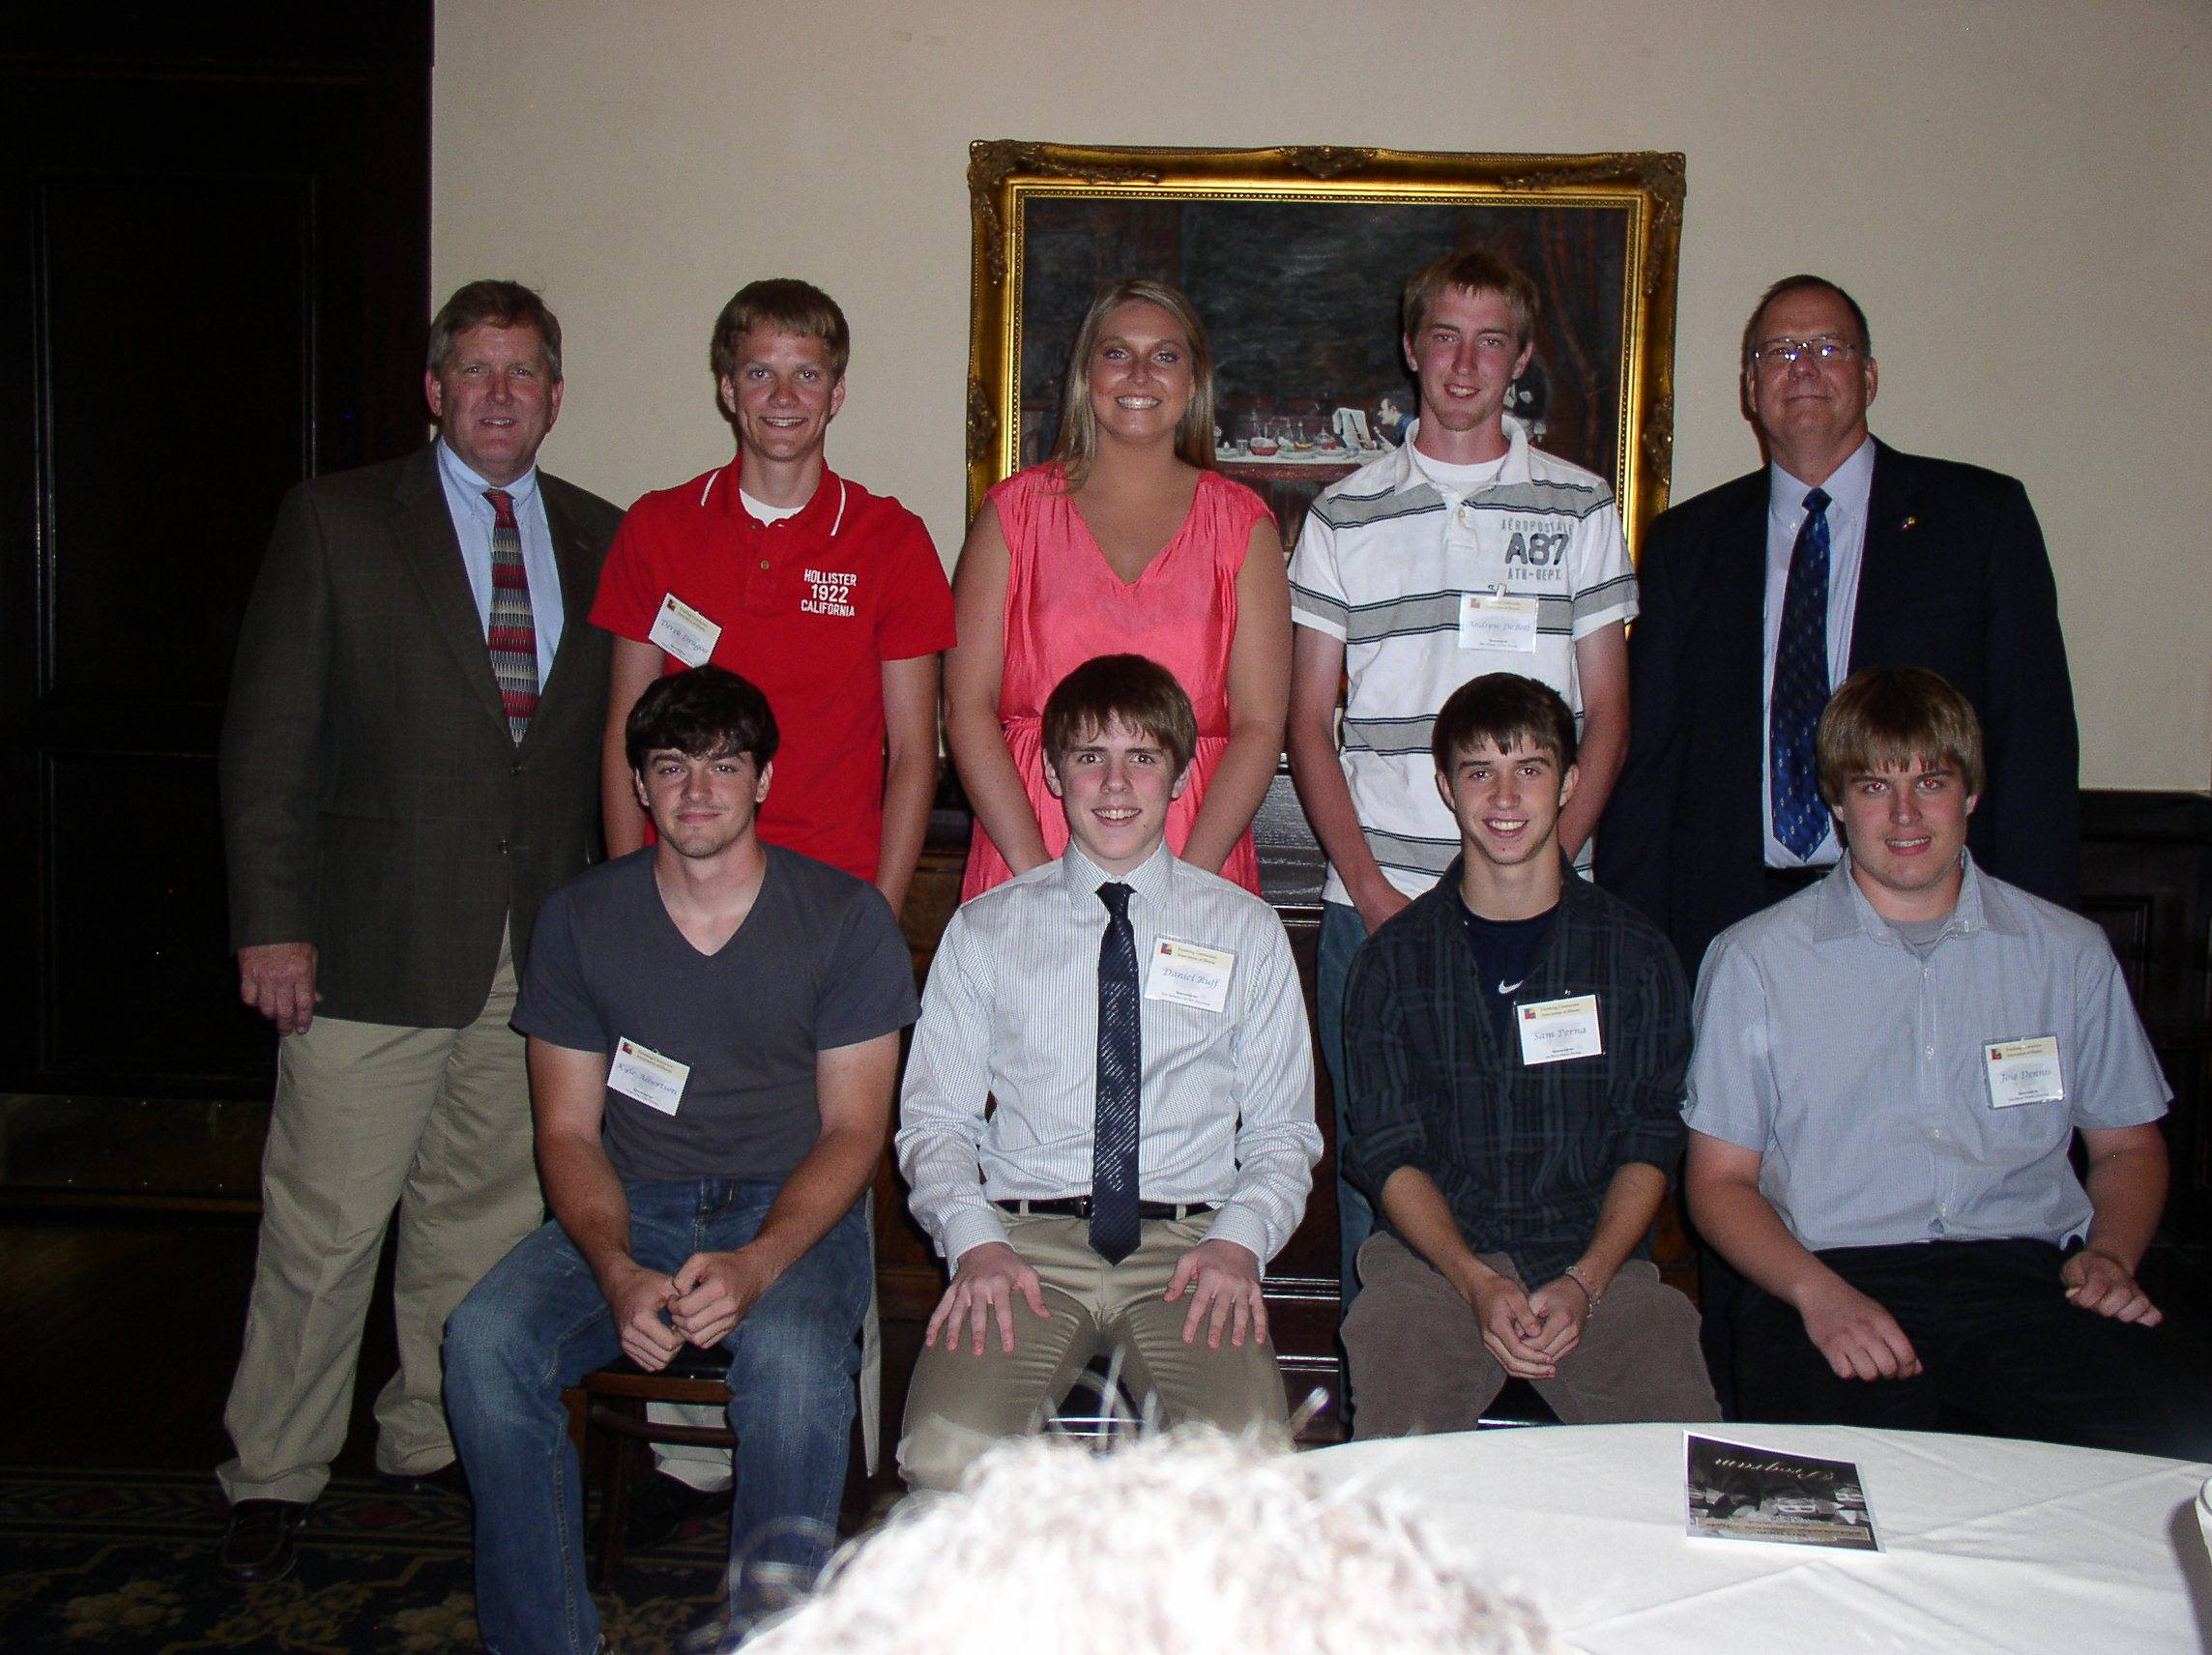 1st Row: Kyle Alberston, Metamora; Daniel Ruff, Aurora; Sam Perna, Winfield; Joie Dennis, Hampshire 2nd Row: Ken Ober (NIPDI Chairman), Derek Dragoo, Peoria; Paige Meyers, Spring Grove; Andrew DeBolt, Plano; and Mark Palmer (NiPDi CEO) Not Pictured: Gabriele Dokianos and Maxwell Counihan